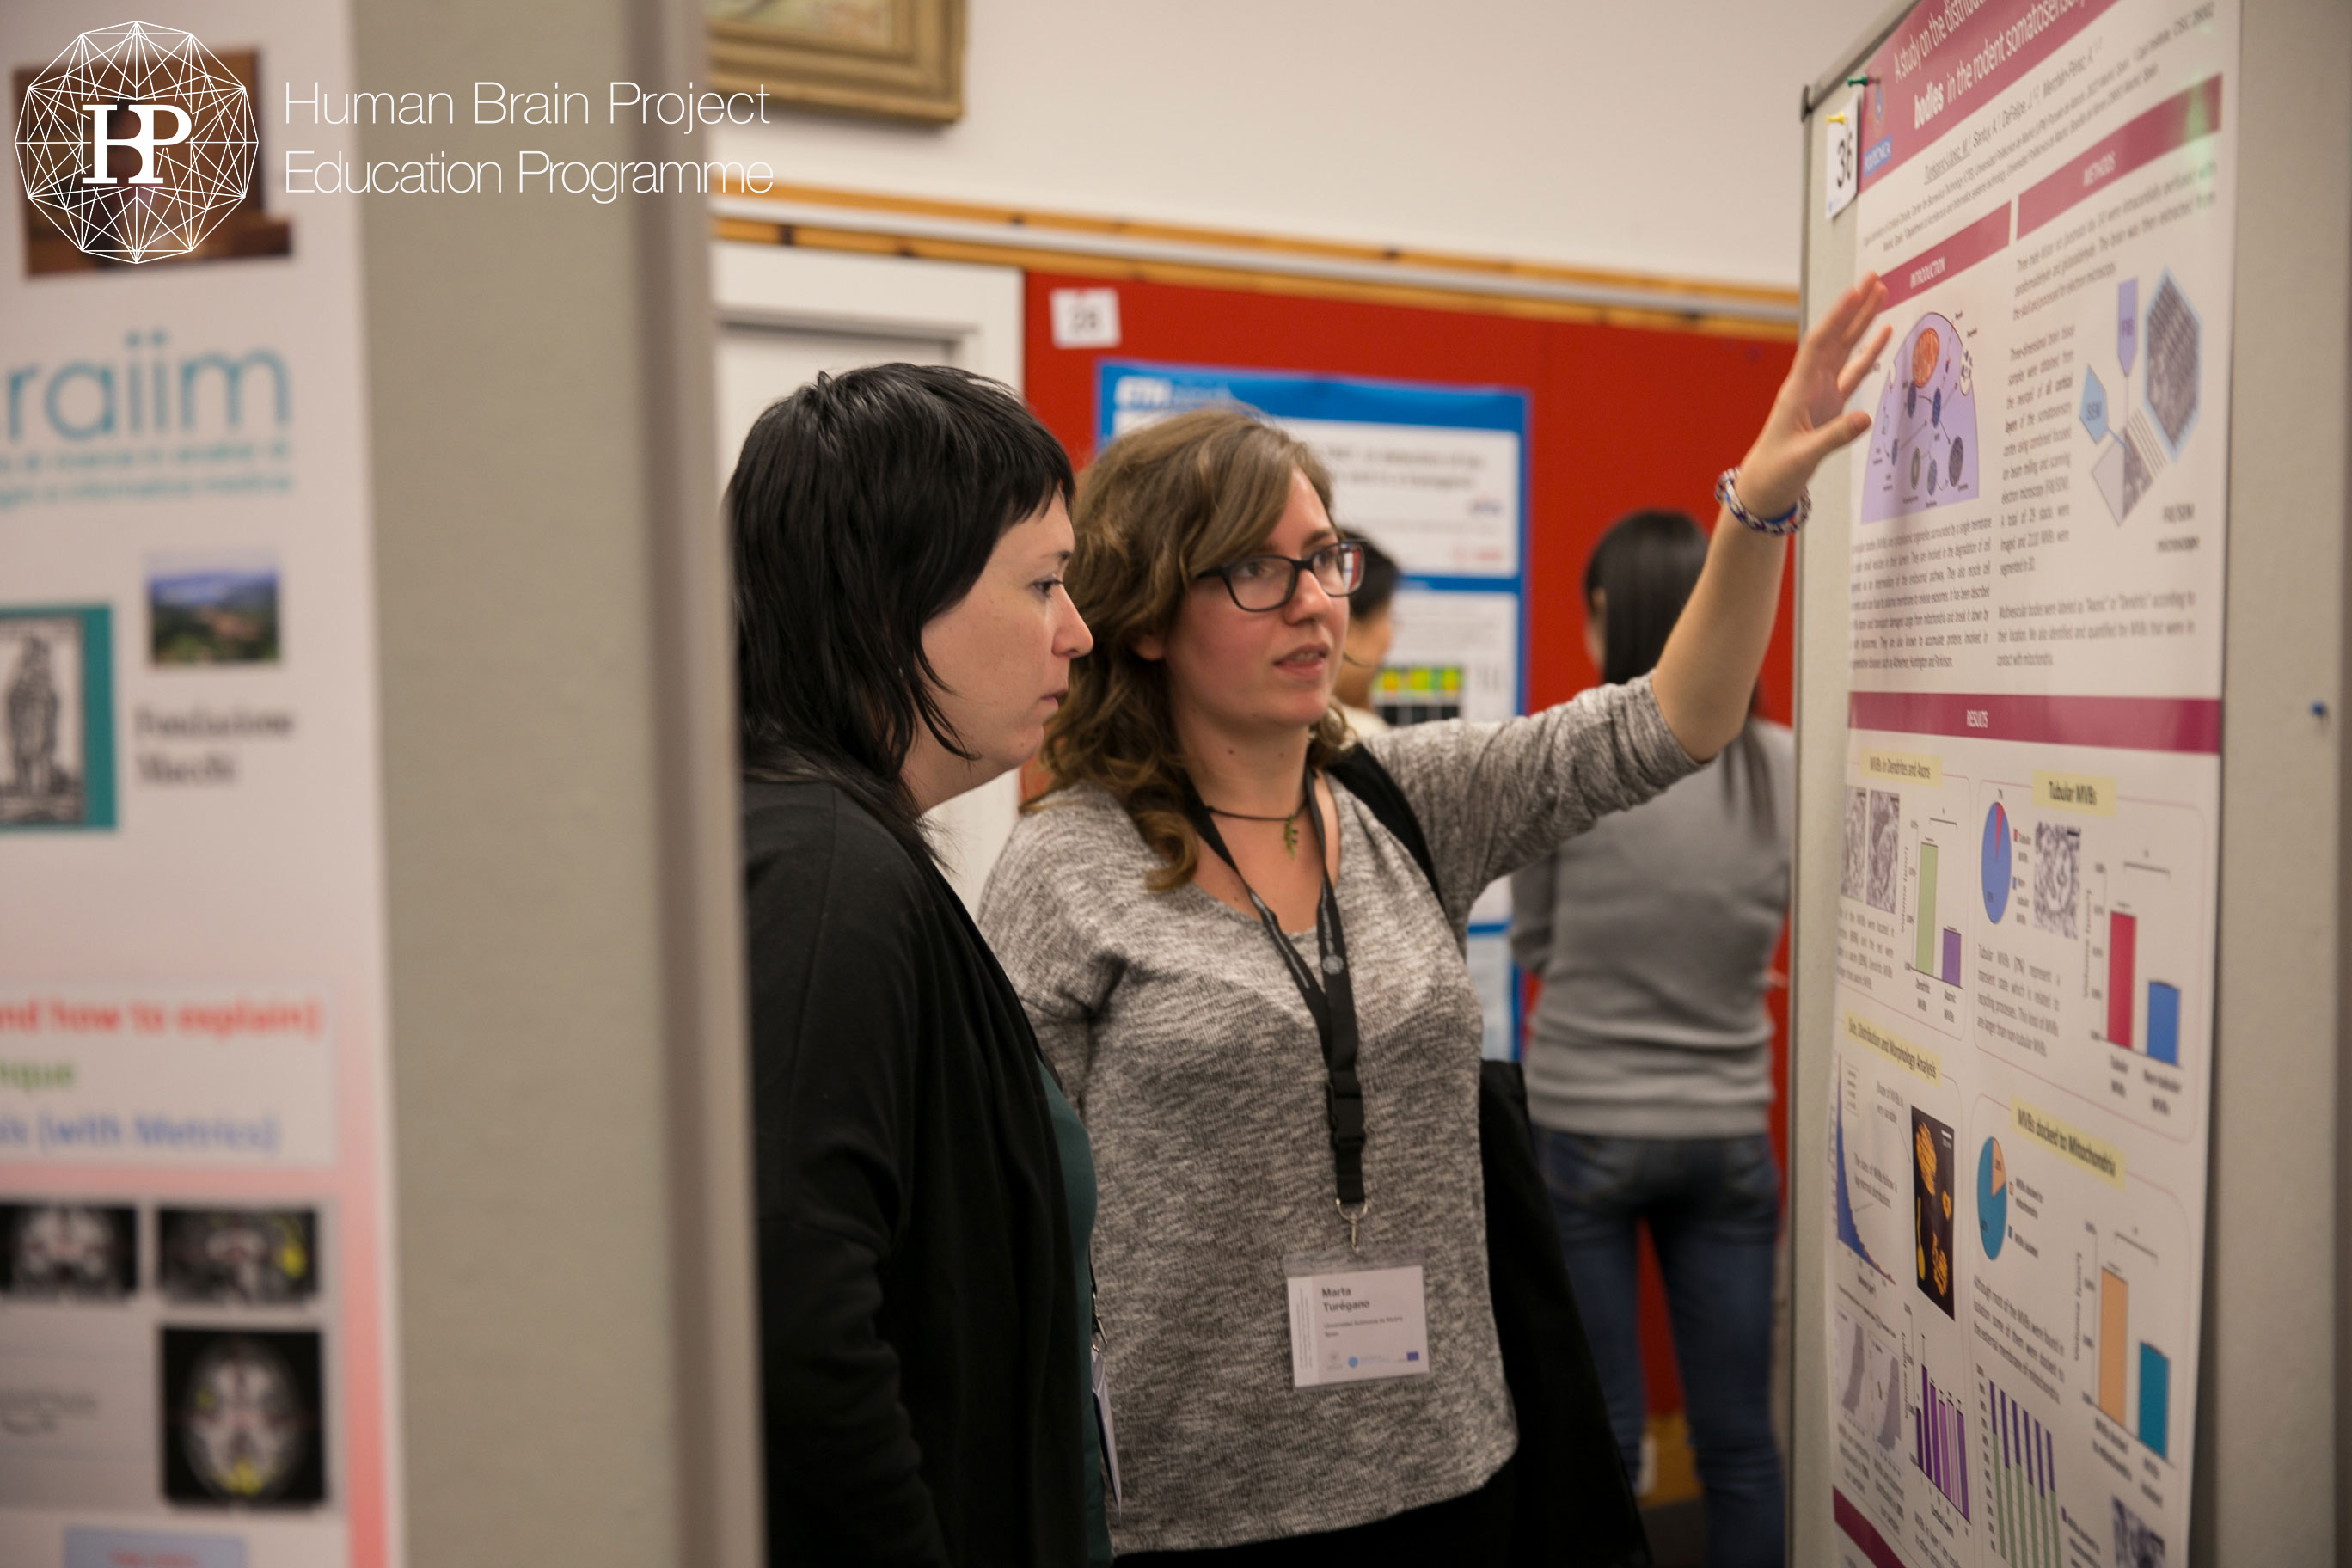 3rd_HBPSchool_Picture_18.jpg -